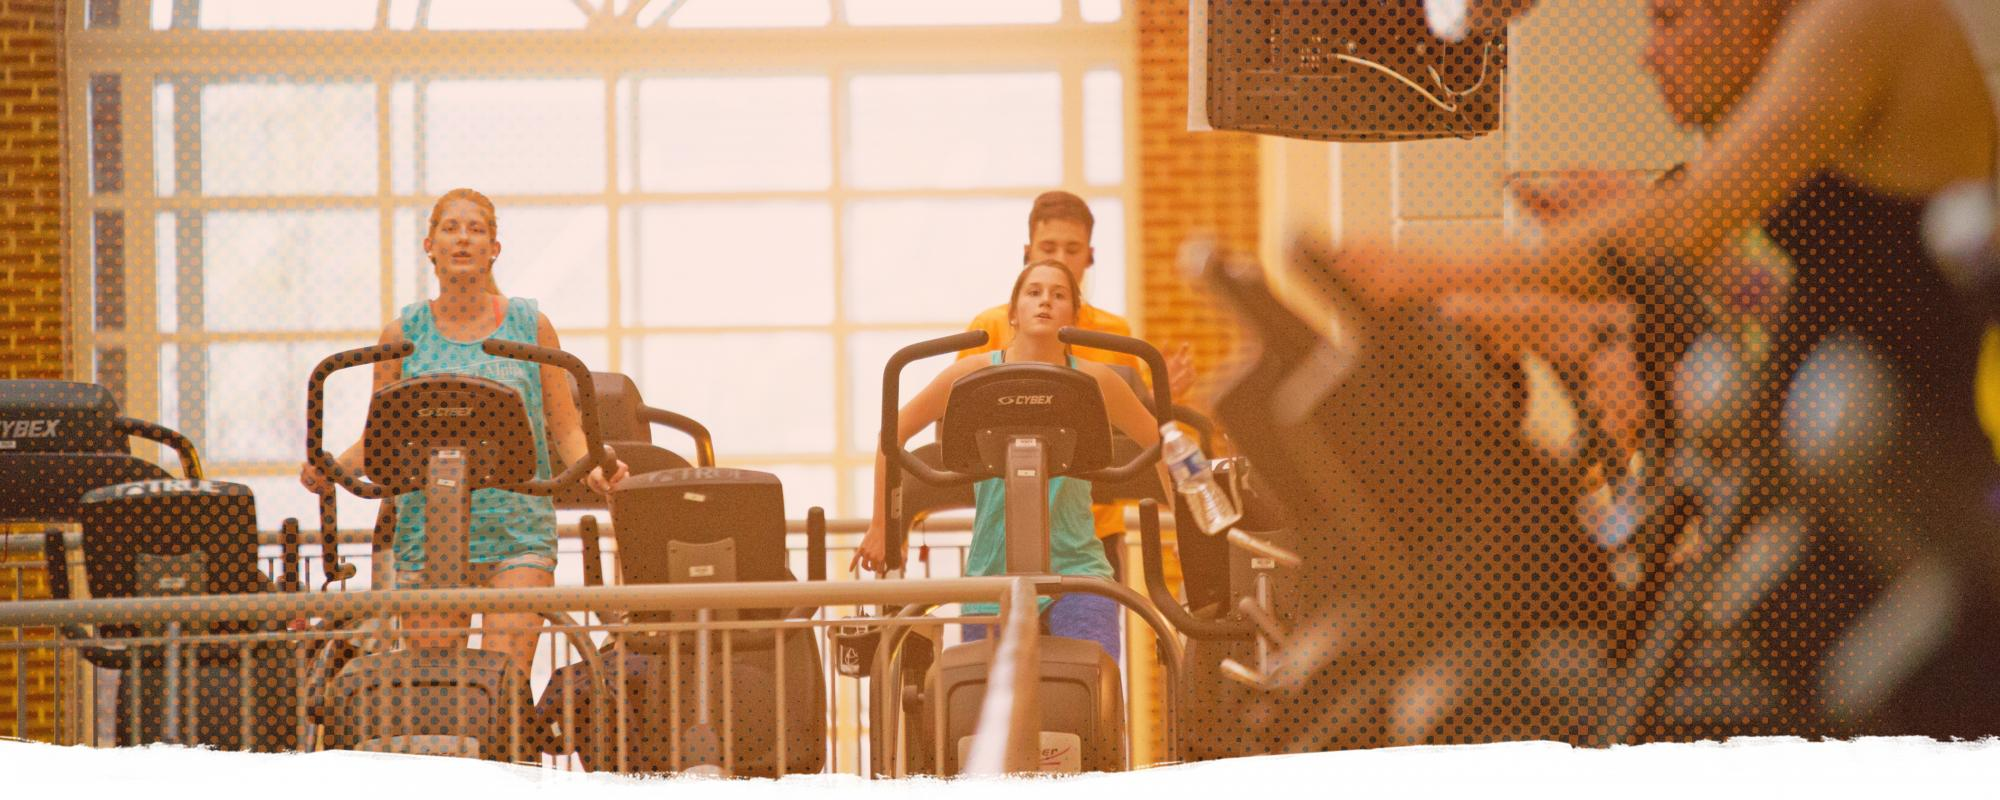 People working out on machines at the Aquatic and Fitness Center